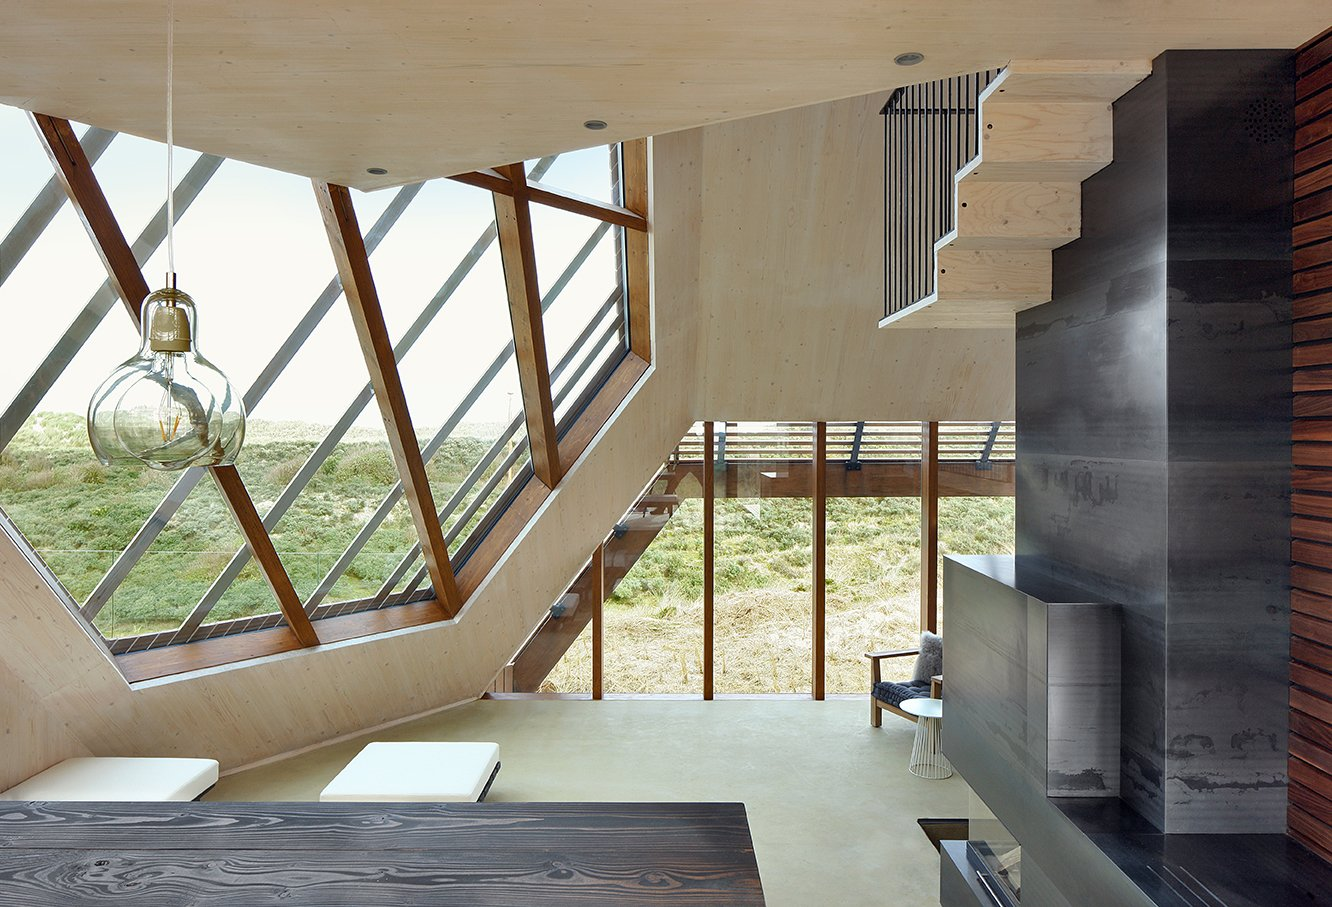 Each room in the interior was carefully curated to reflect the unique function of that space. The interior interacts intimately with the surrounding landscape, as different visual perspectives of the dunes are framed by the geometric facade.